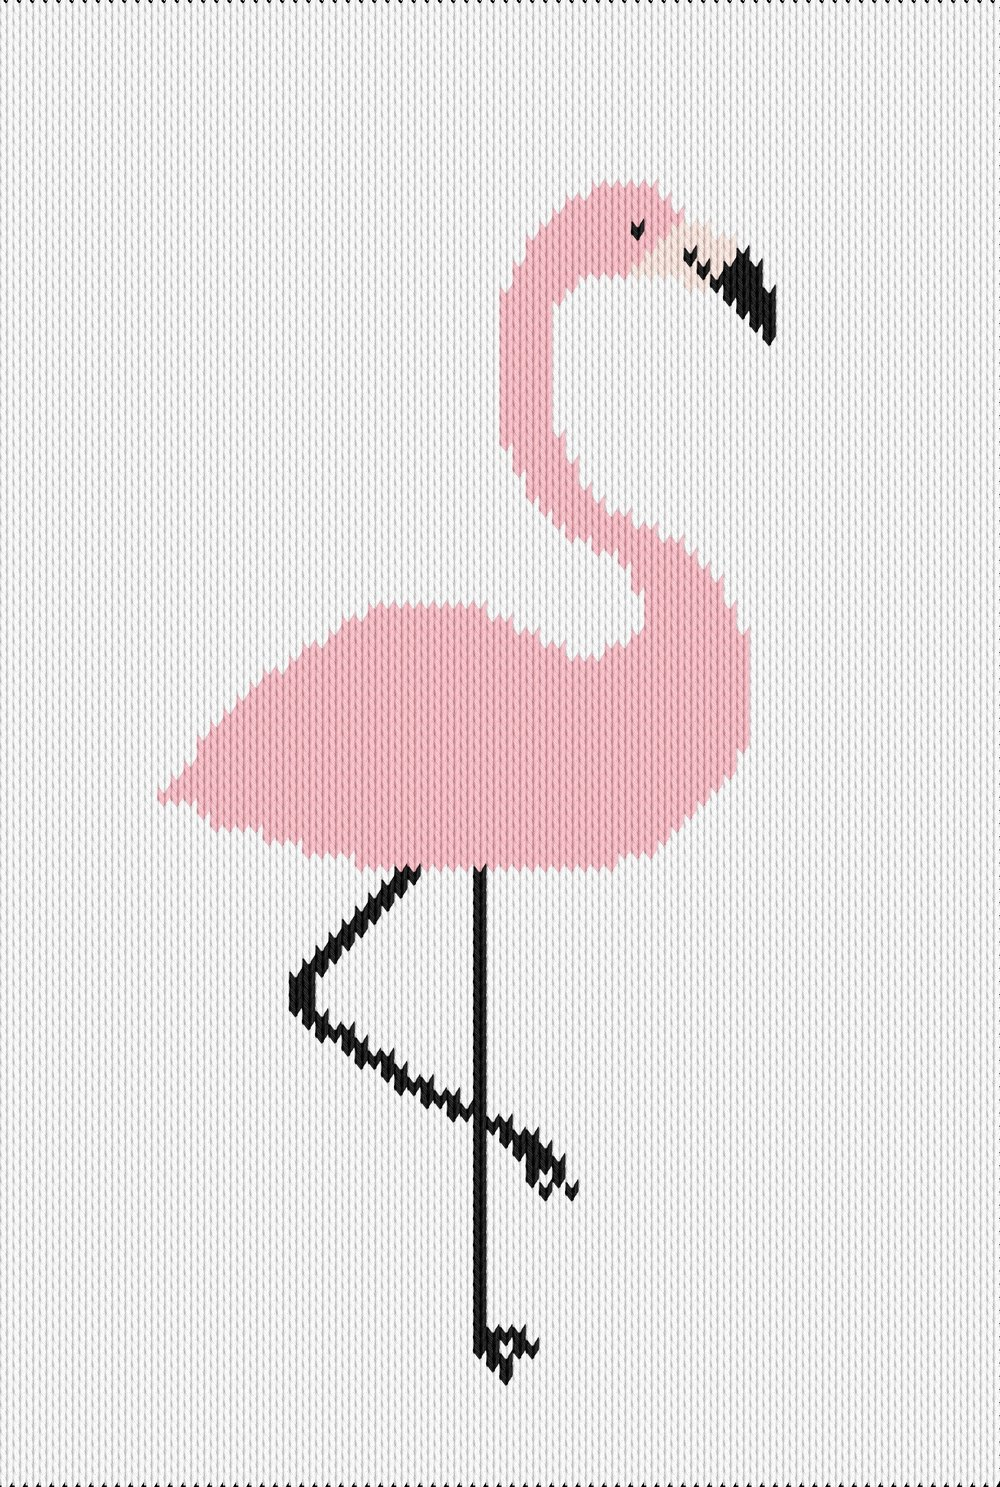 Knitting motif chart, flamingo